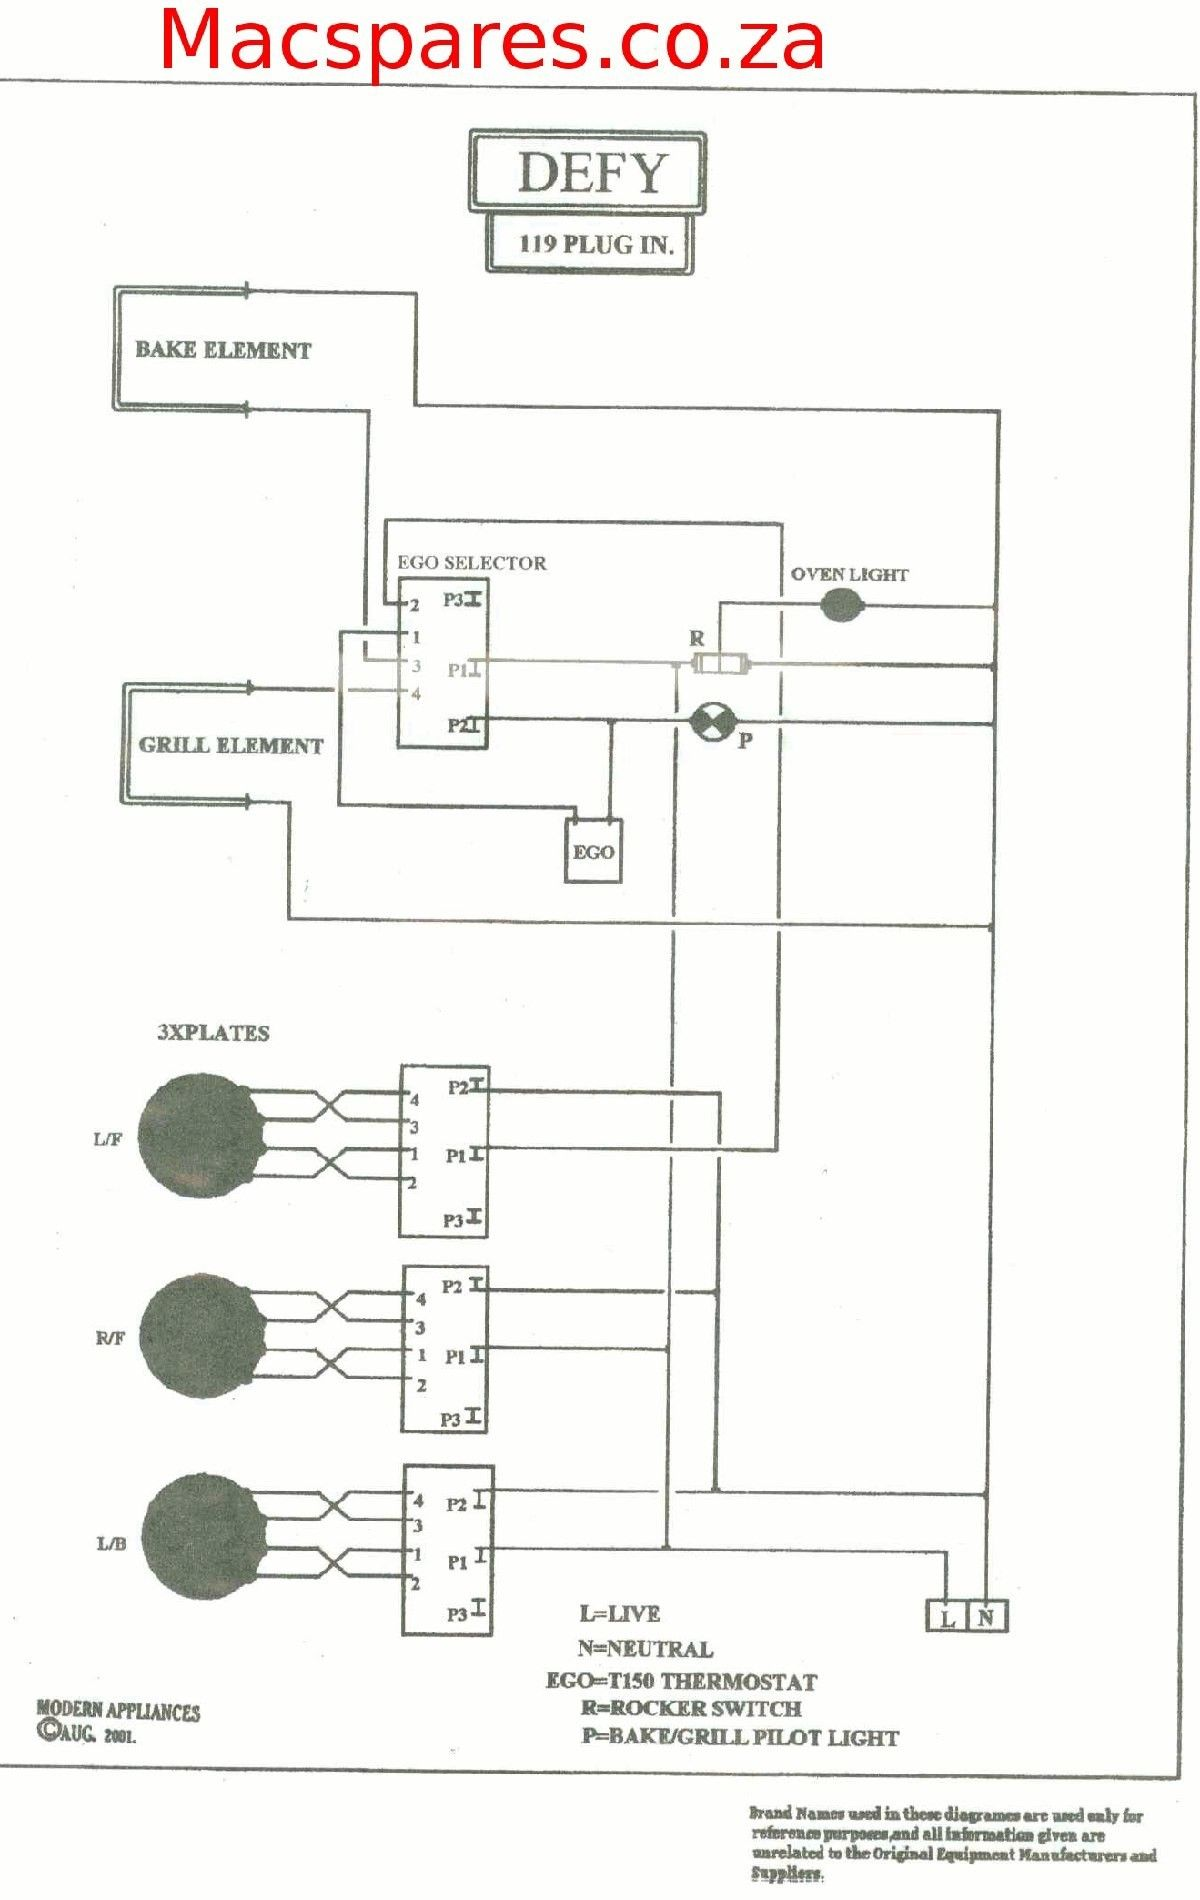 Unique Wiring Diagram Of Electric Cooker Diagram Diagramsample Diagramtemplate Wiringdiagram Diagramc Electric Oven And Hob Electric Cooker Electric Stove